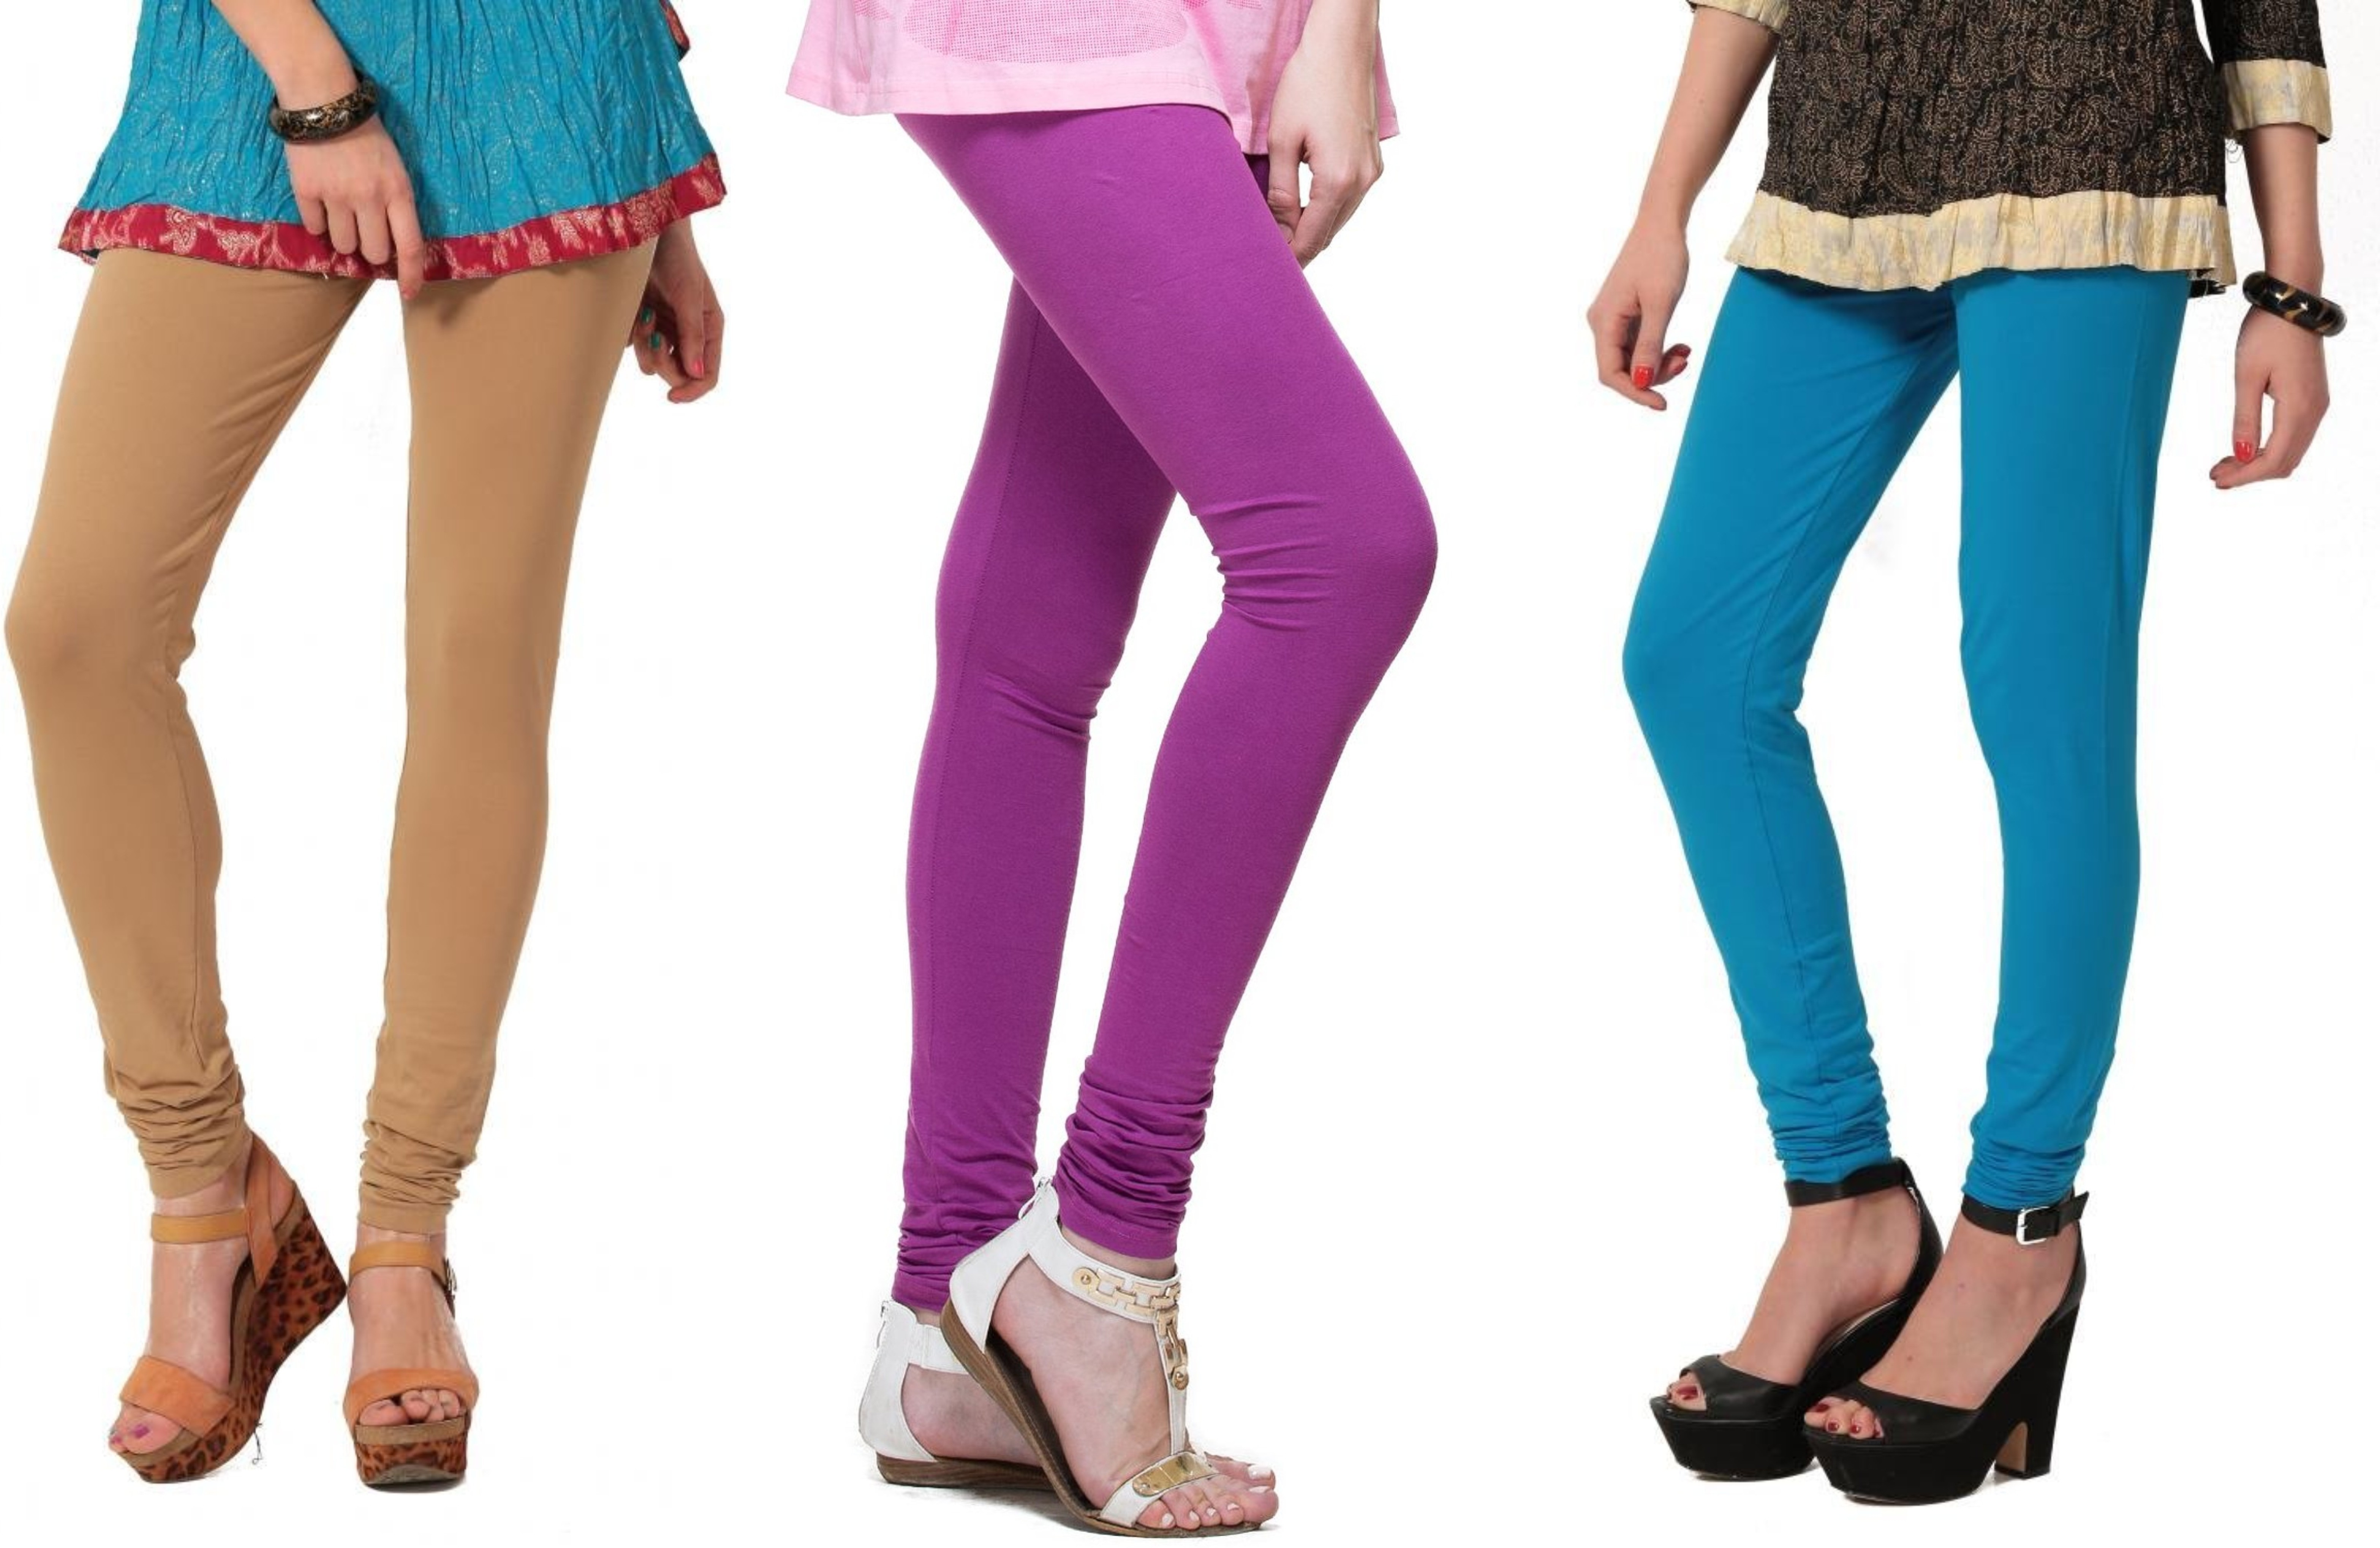 Angel Soft Womens Beige, Purple, Light Blue Leggings(Pack of 3)